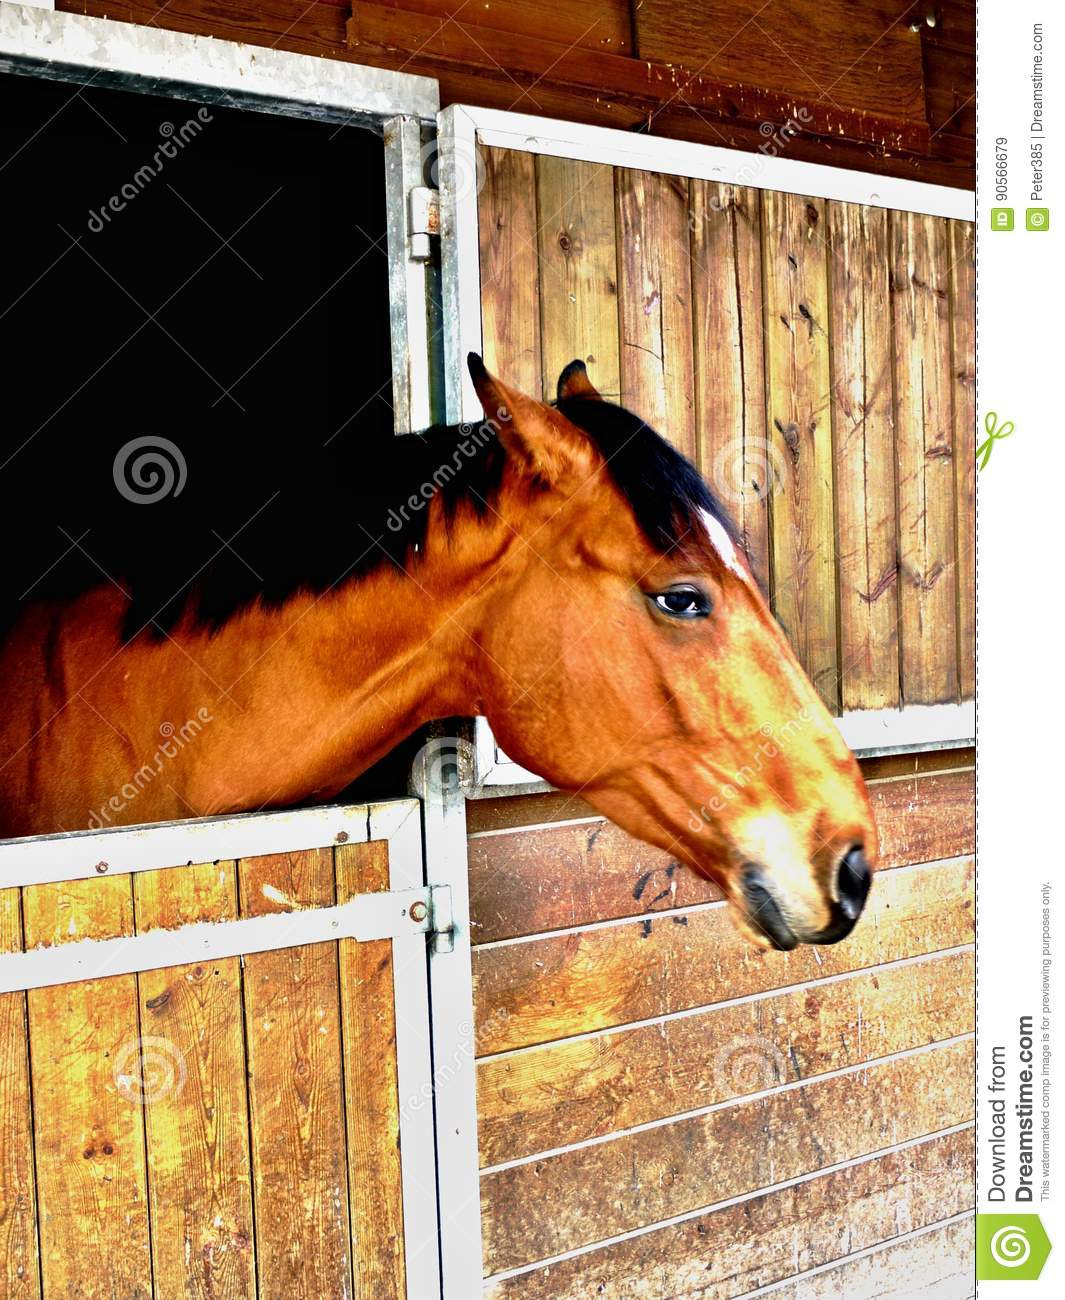 Download Brown horse stock image. Image of mammal, ferus, background - 90566679